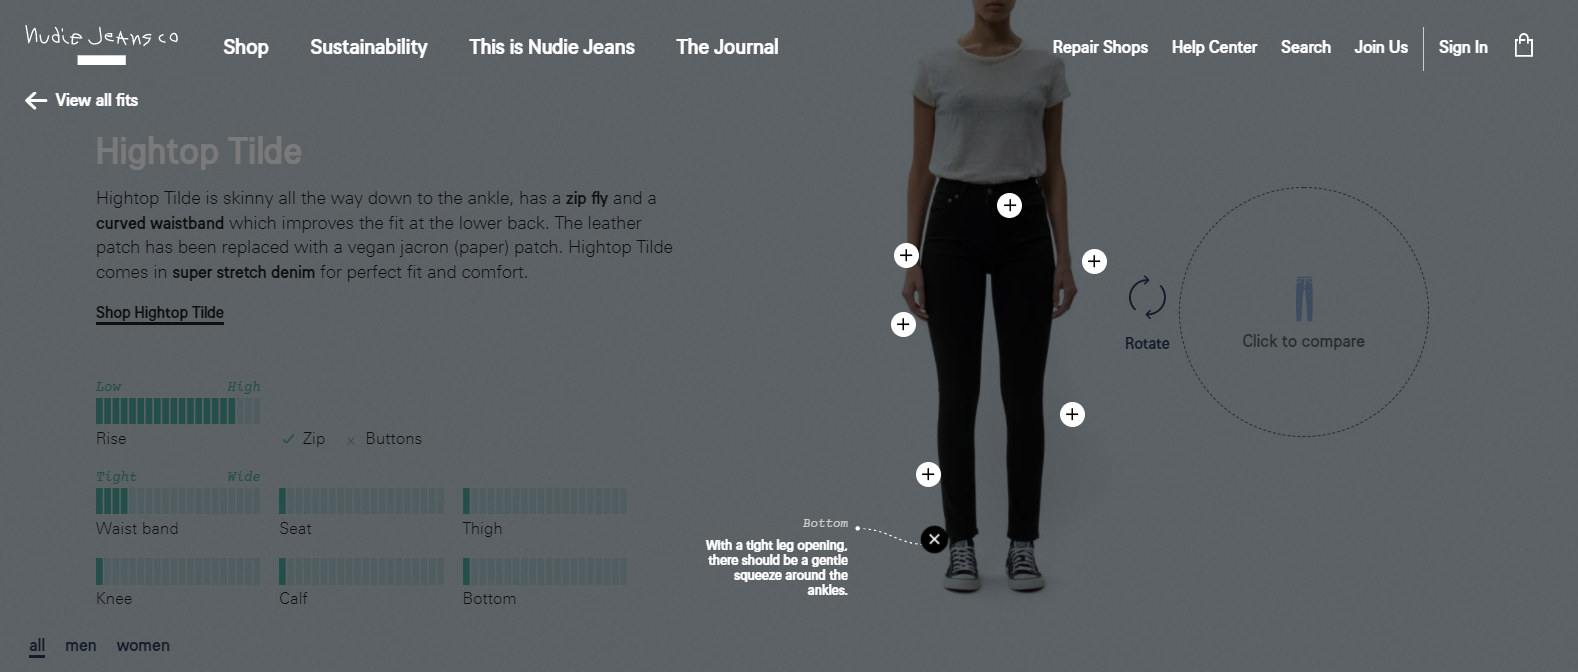 Nudie Jeans' product page uses VR